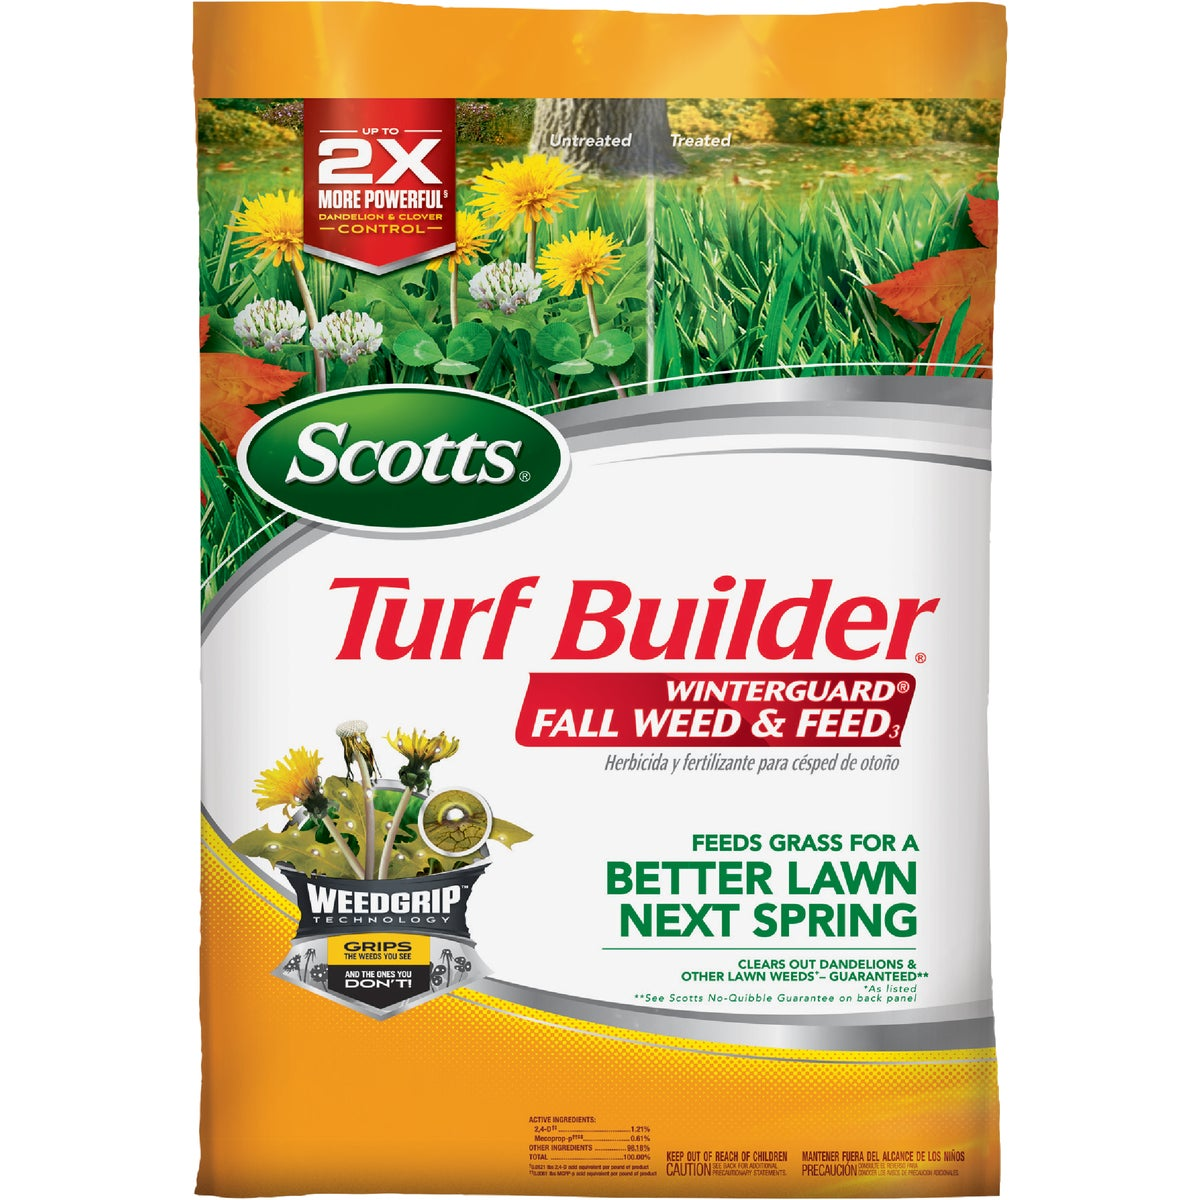 15M TB WNTRGUARD WEED&FD - 50245 by Scotts Company